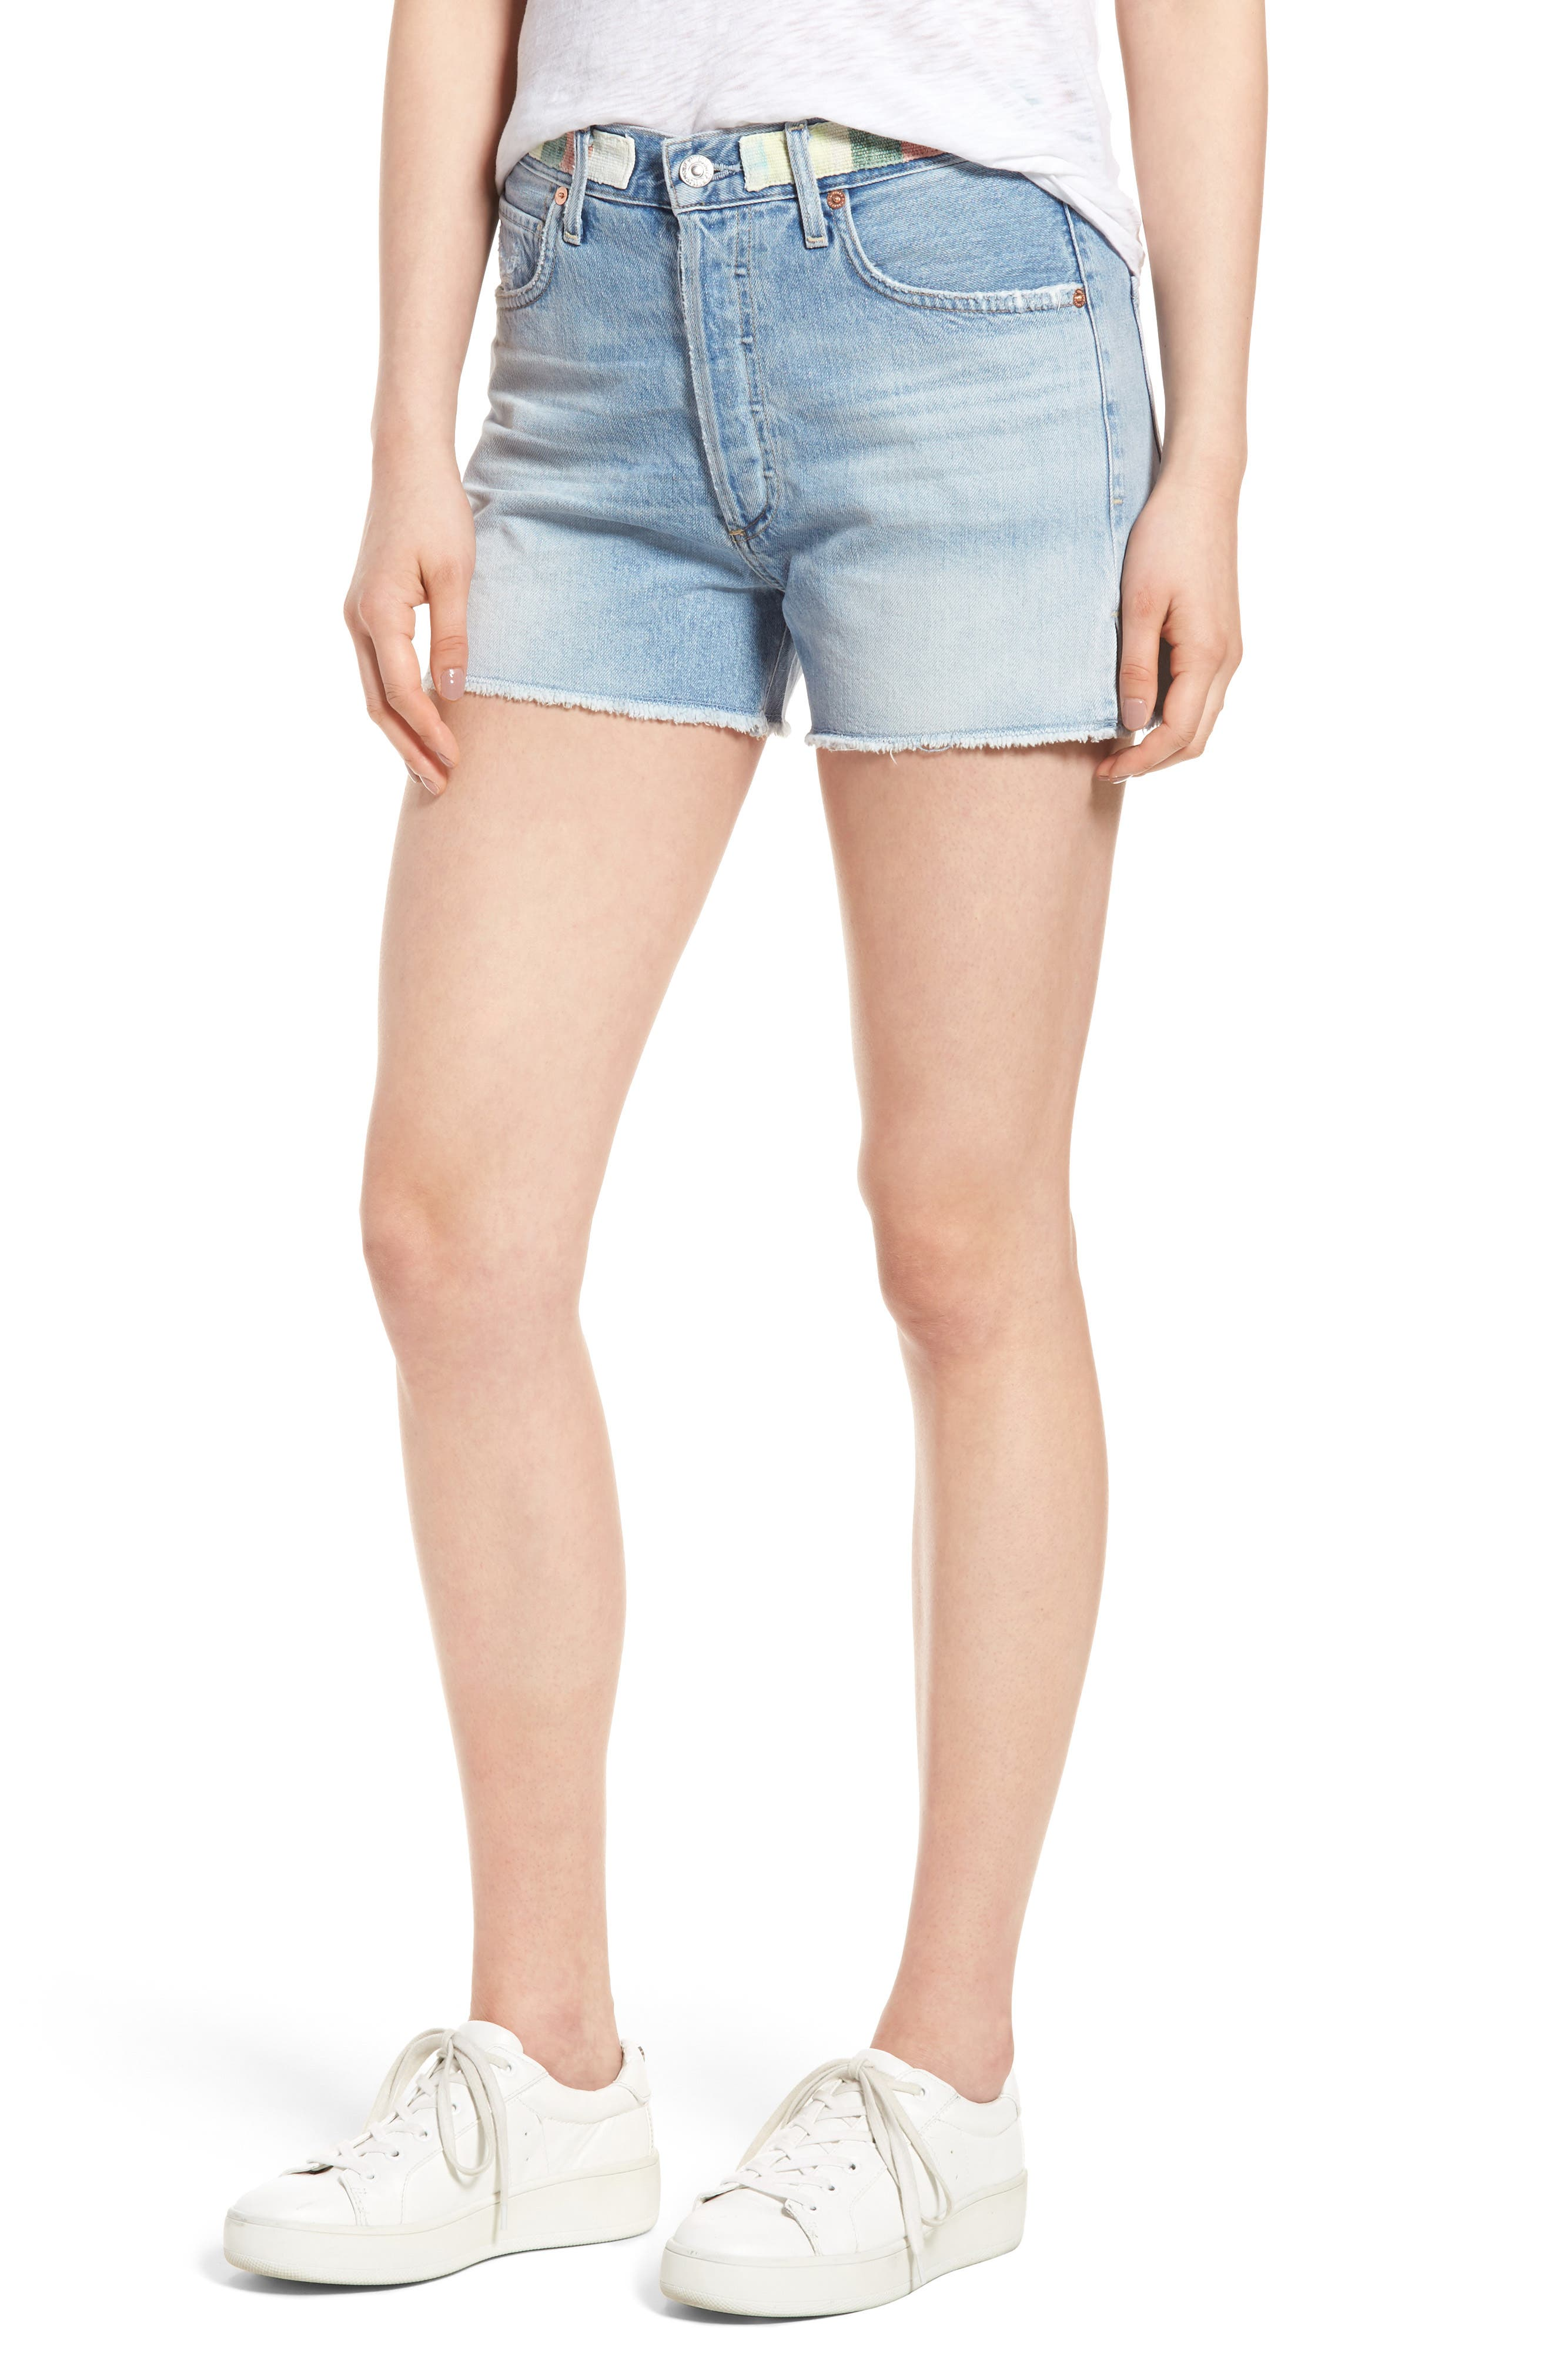 Alyx High Waist Cutoff Denim Shorts,                         Main,                         color, 400